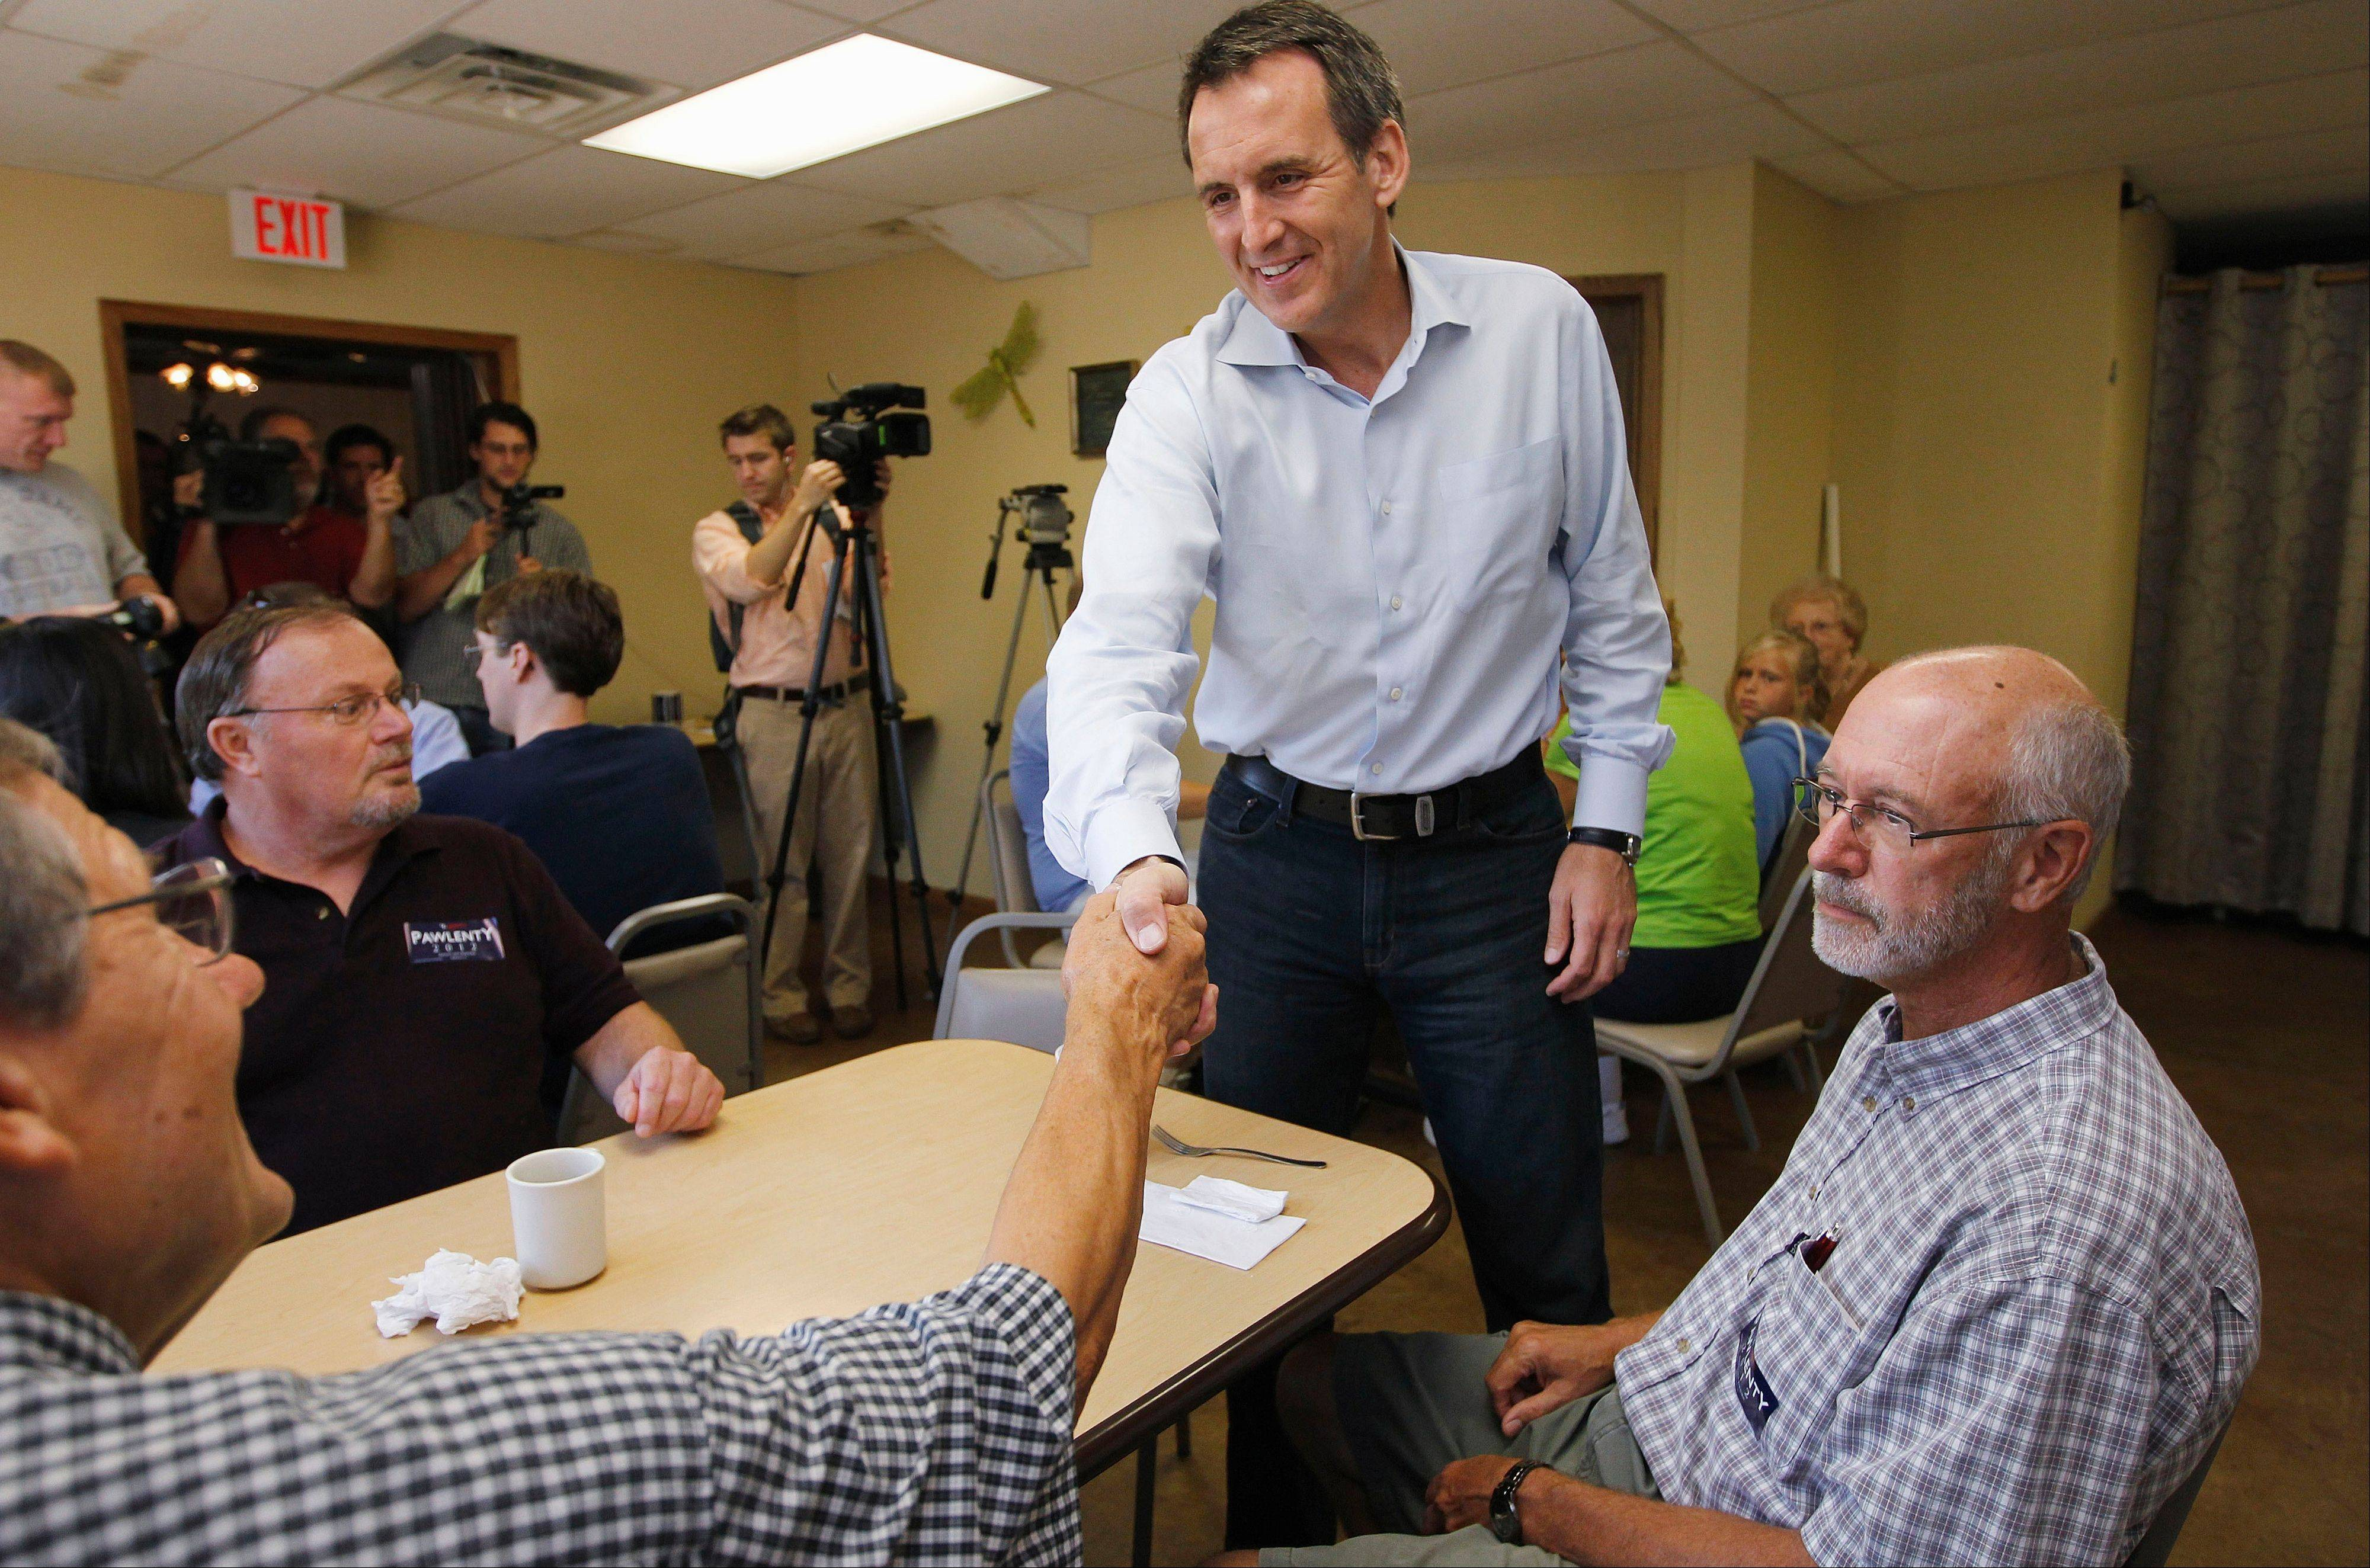 Former Minnesota Gov. Tim Pawlenty greets residents as he makes a campaign stop at Coffee Cup Cafe in Sully, Iowa, on Tuesday.